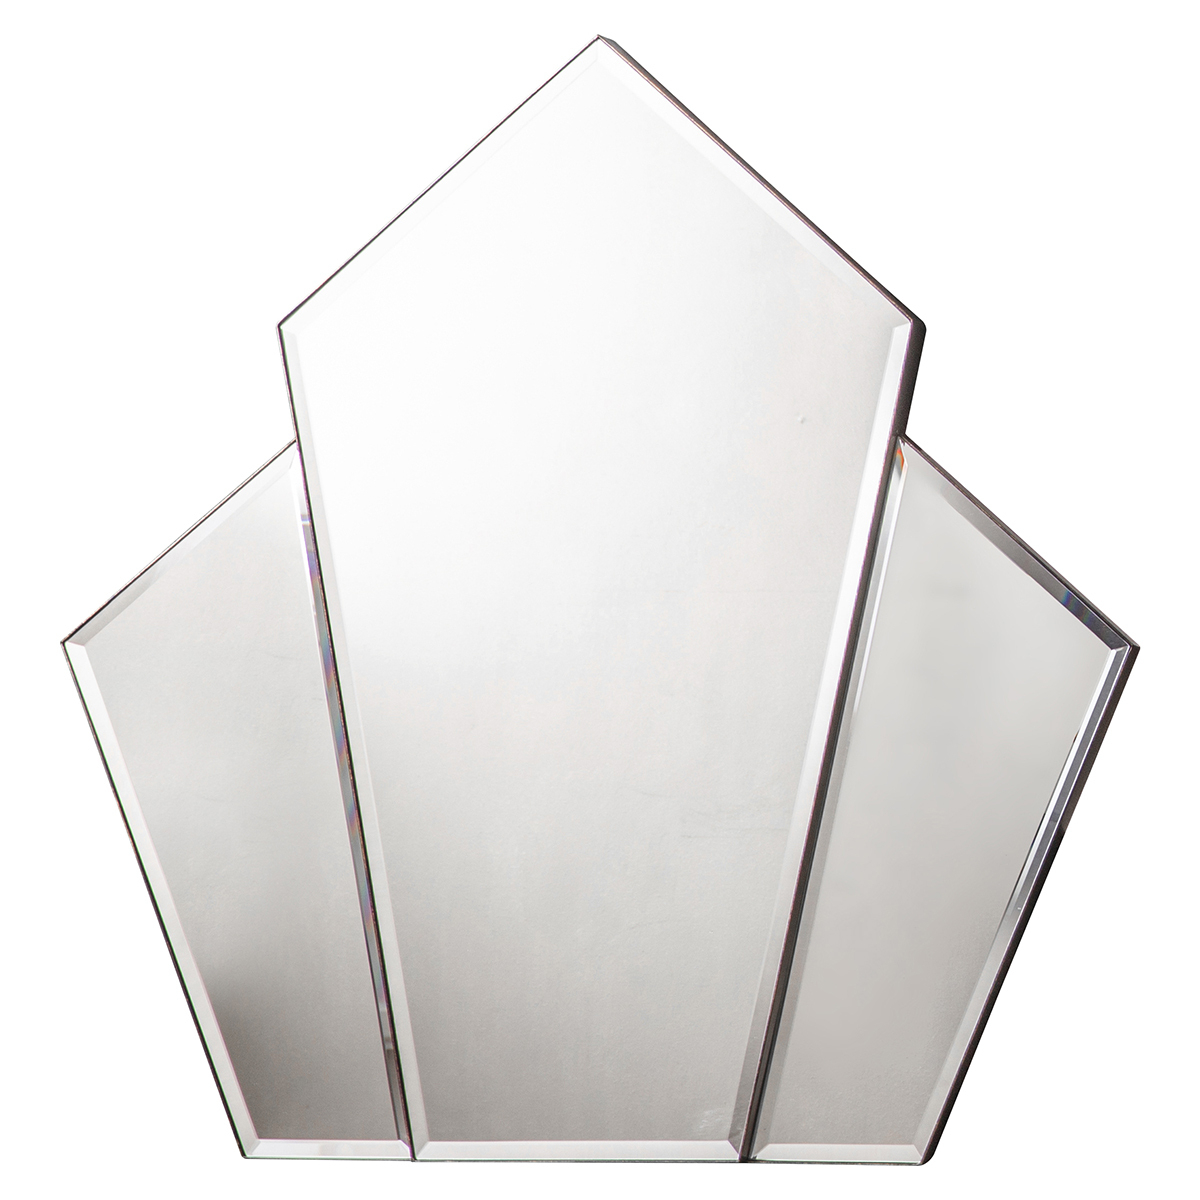 Chien Angled Diamond Wall Mirror Regarding Most Up To Date Angled Wall Mirrors (View 9 of 20)